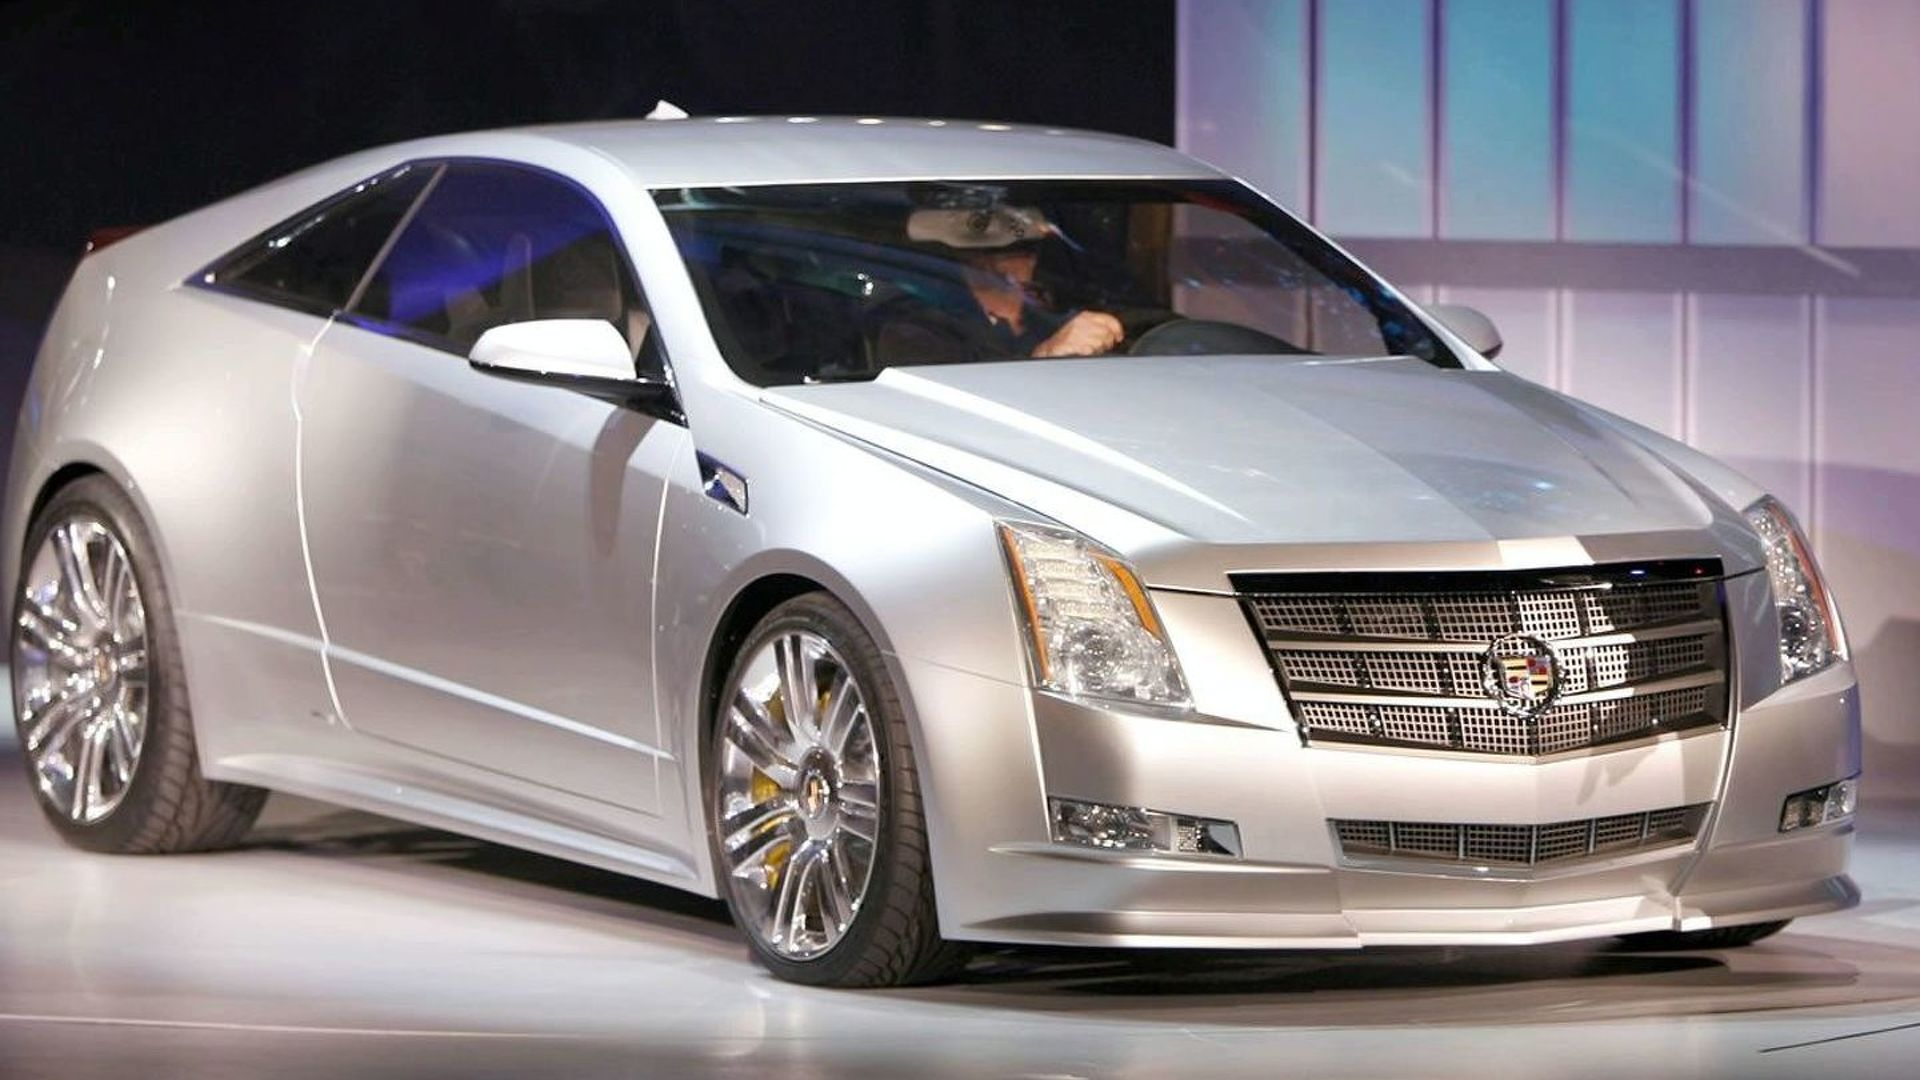 cadillac cts sale poynette cars modern classic models car for other near